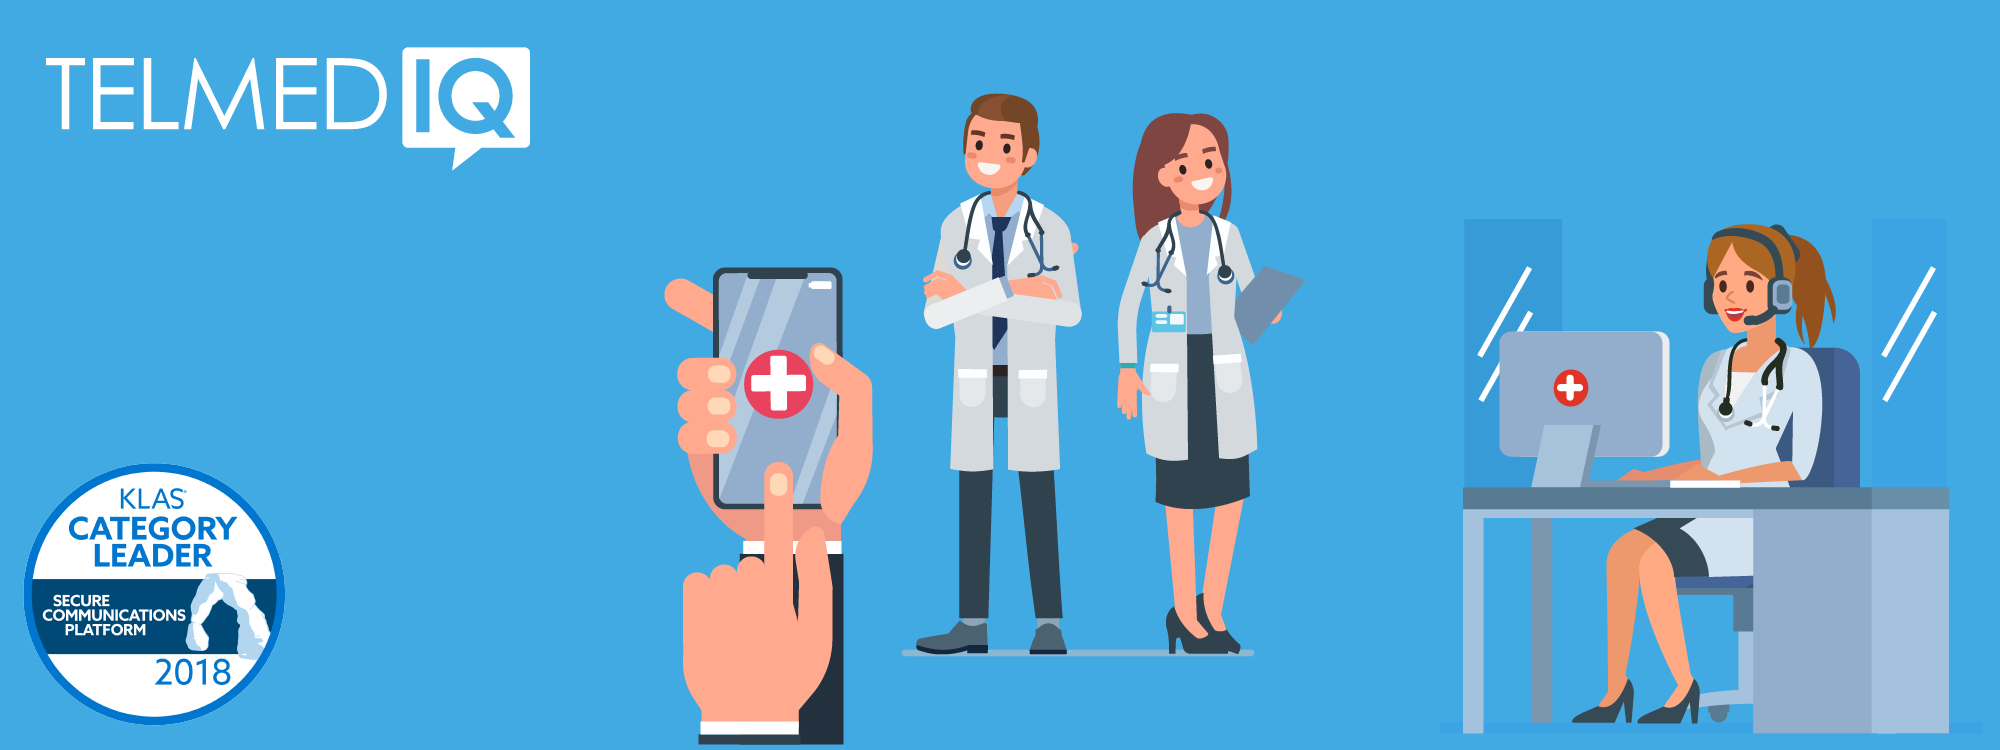 Hospital Call Center Software: How to Solve the Top 3 Issues